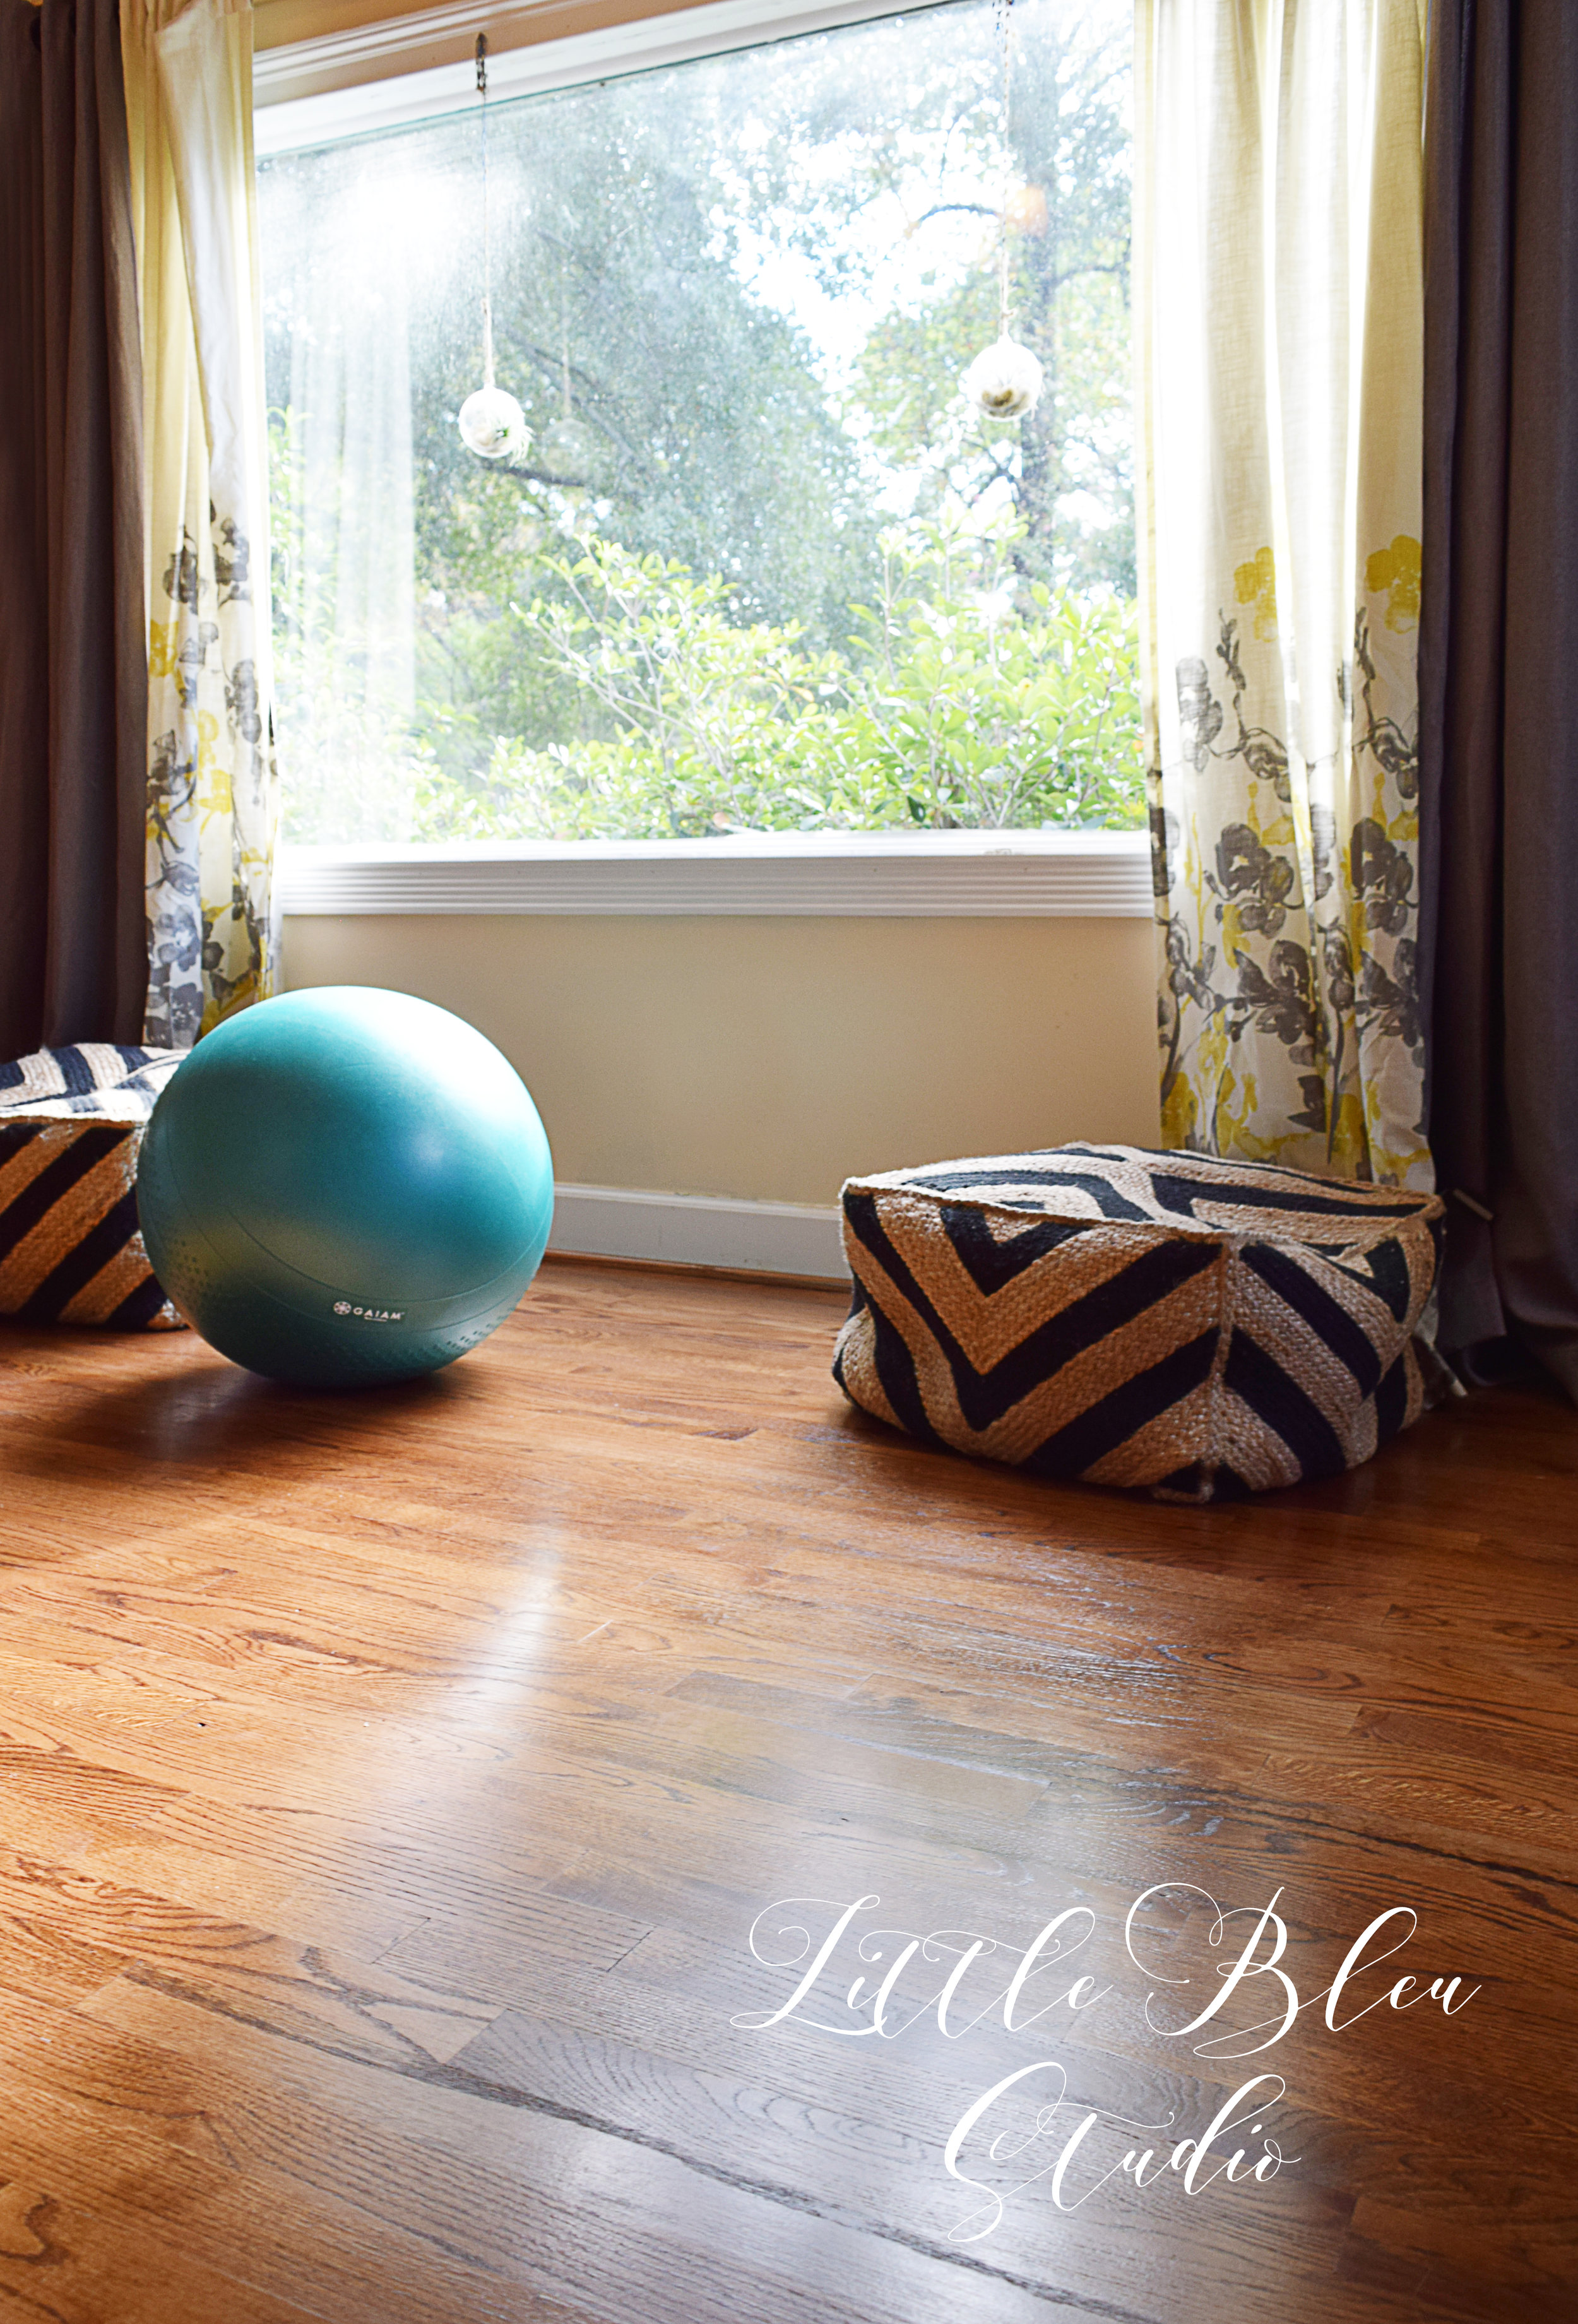 Since this space is so huge, I have another little sitting area here. This is the space that I'll have my yoga mat too!